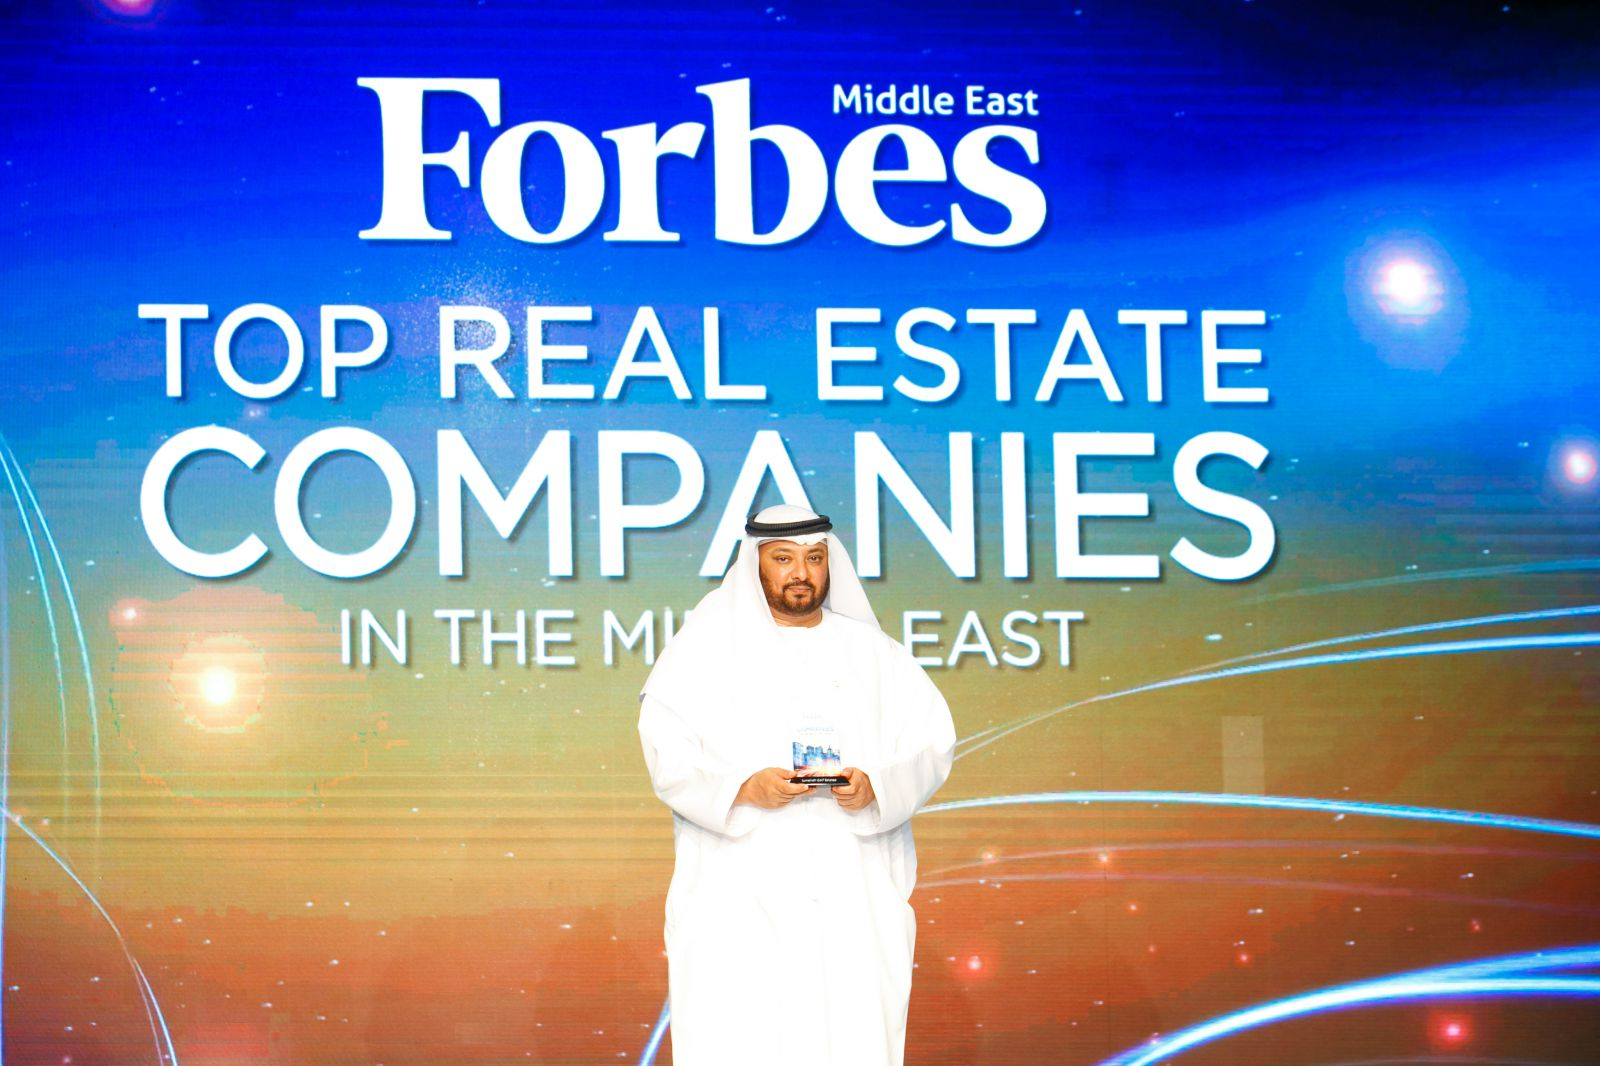 JUMEIRAH GOLF ESTATES NAMED ONE OF THE TOP 100 REALESTATE COMPANIES IN THE MIDDLE EAST